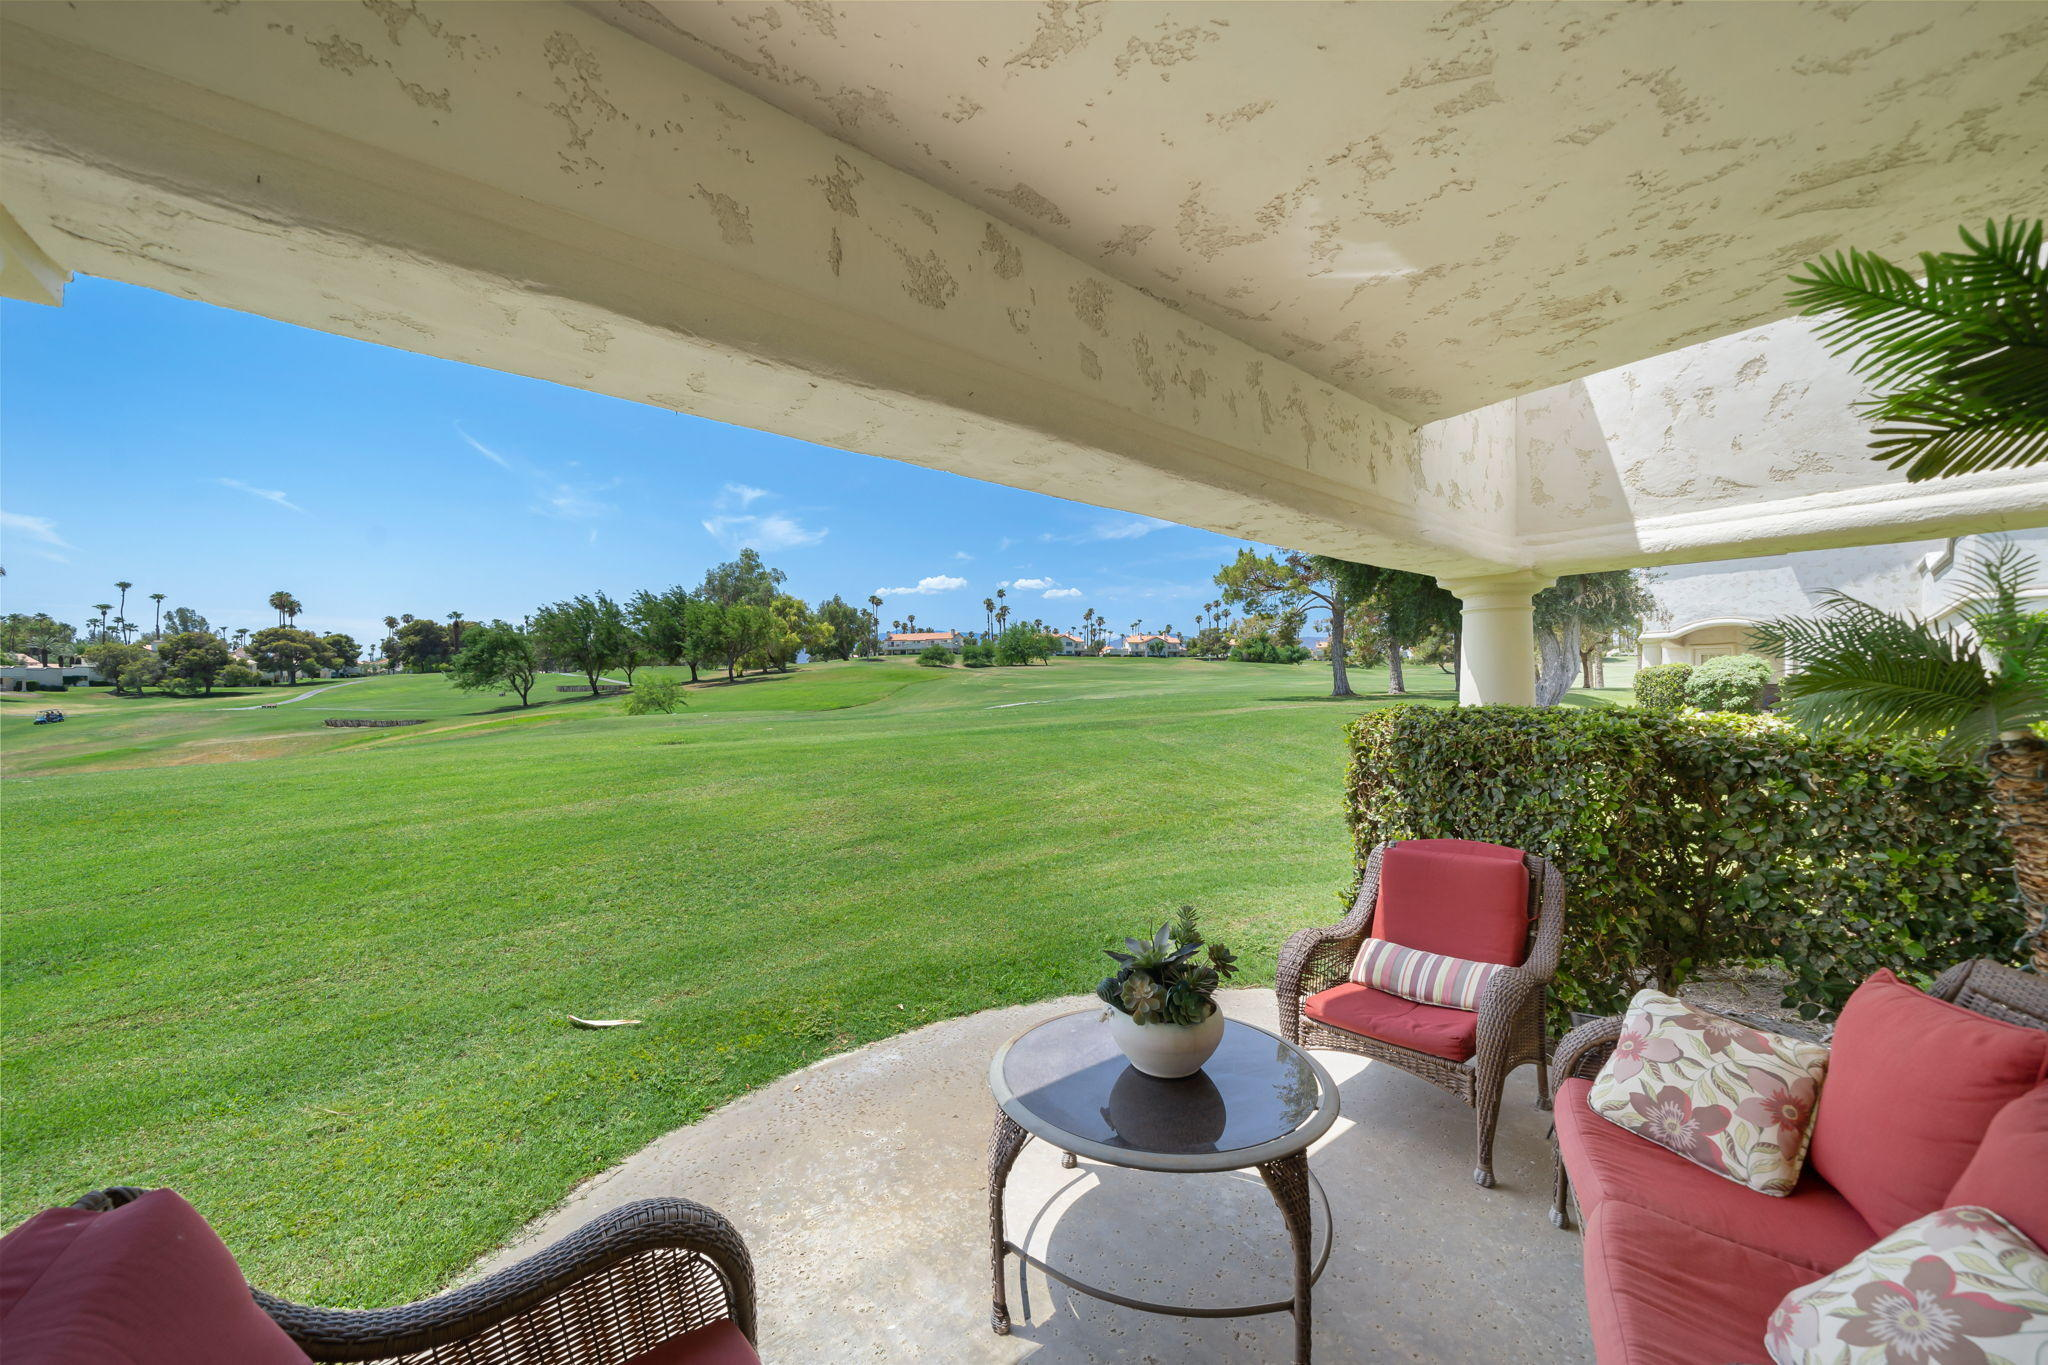 LOCATION LOCATION LOCATION!!  CLEAN CLEAN CLEAN!!  VIEW VIEW VIEW!!  3 Bedroom 2.5 Bathroom  LOWER LEVEL CONDO! There is no doubt that you have found the best location in the Prestigious Desert Falls Country Club with a LOWER LEVEL 1814 SQ FT  3 Bedroom 2.5 bathroom home on the golf course with  open floor plan.    The Patio opens up to immense double Fairway Views with a shady sought after South West direction. The Scottish Links Championship Golf course is semi-private.   This home is sold Turn Key  ( what you see is what you get.)  The Quality Furniture Absolutely  enhances this condo .  2  suits for your family or guests needs both with LARGE walk in closets. A third bedroom/den with closet. The spacious Master suit has a big on suite with tub and separate walk in shower.  Desert Falls  location is close to the deserts famous El Paseo shopping, Fabulous Dining, CASINOS, and international airport. HOA dues include 32 pools one of witch is JR. Olympic size lap pool and spas - pickle ball - Lighted Tennis - Fabulous Gym and you can have dinner at the Country Club.  Pay as you play golf or Buy a membership. Great country club great people. See it and you will love it.